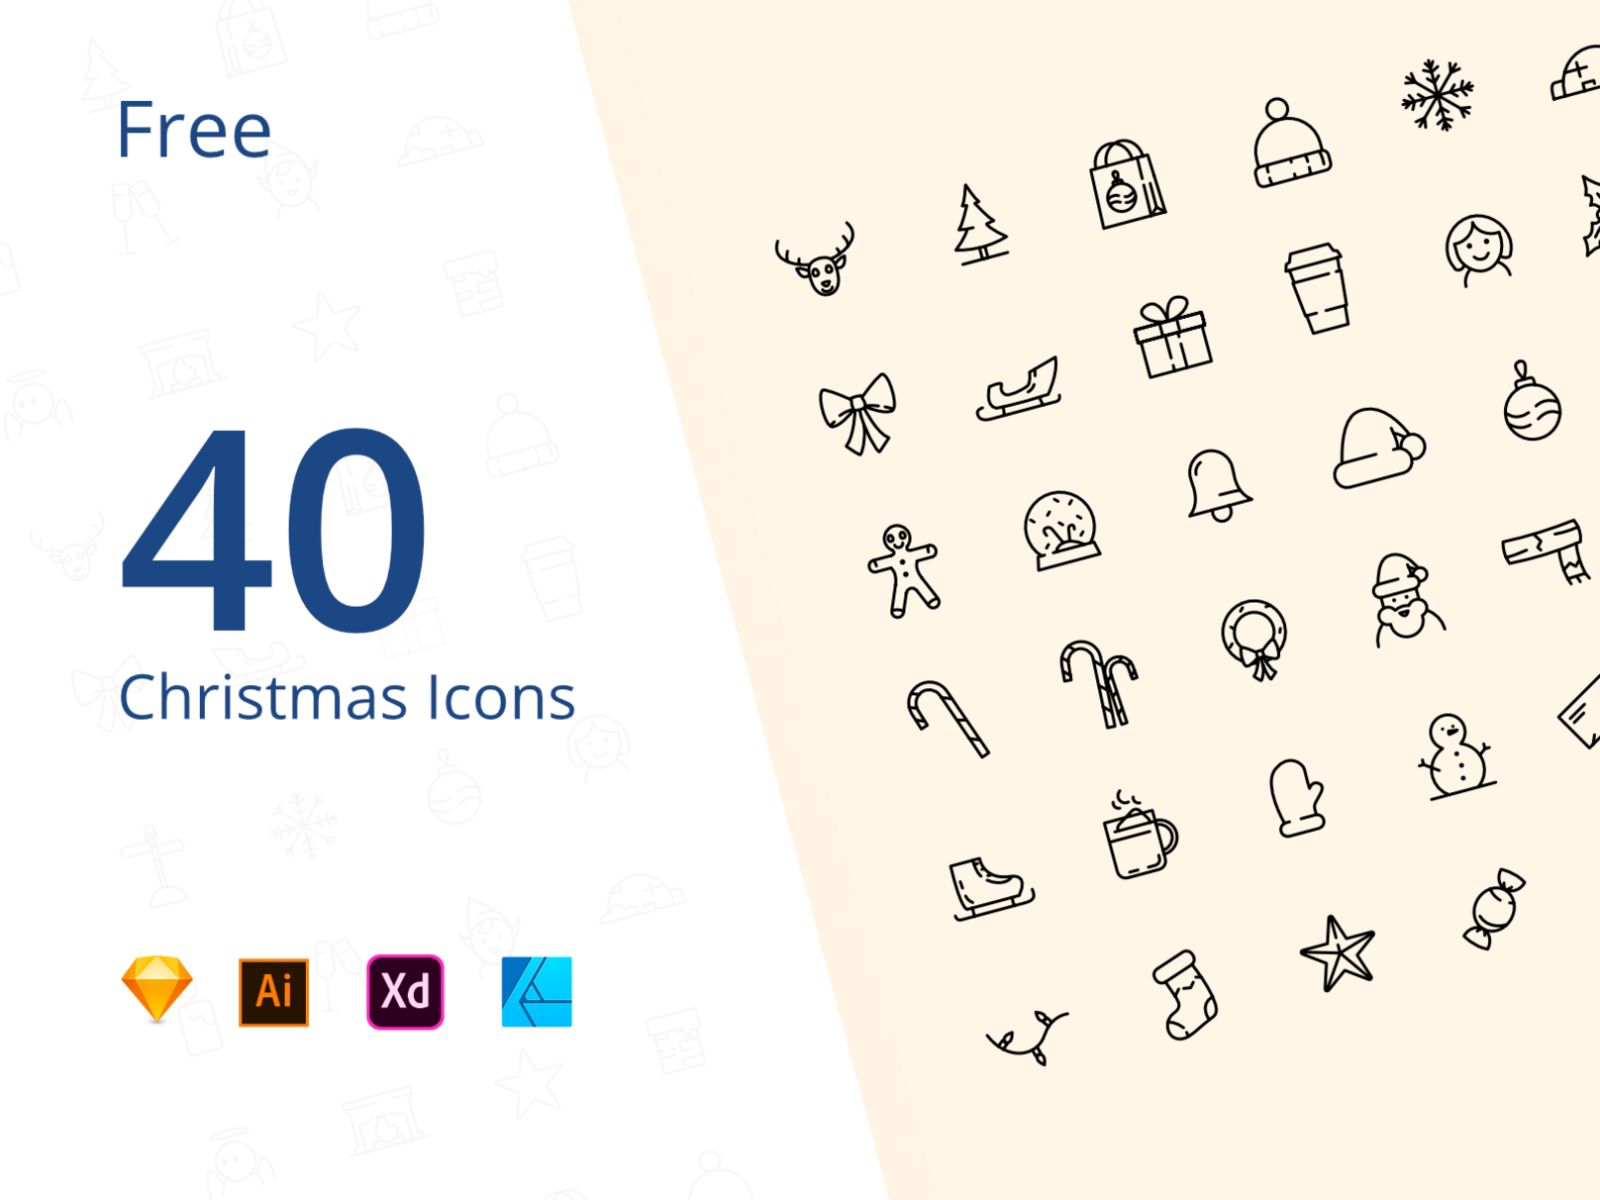 Download 40 Free Christmas icons